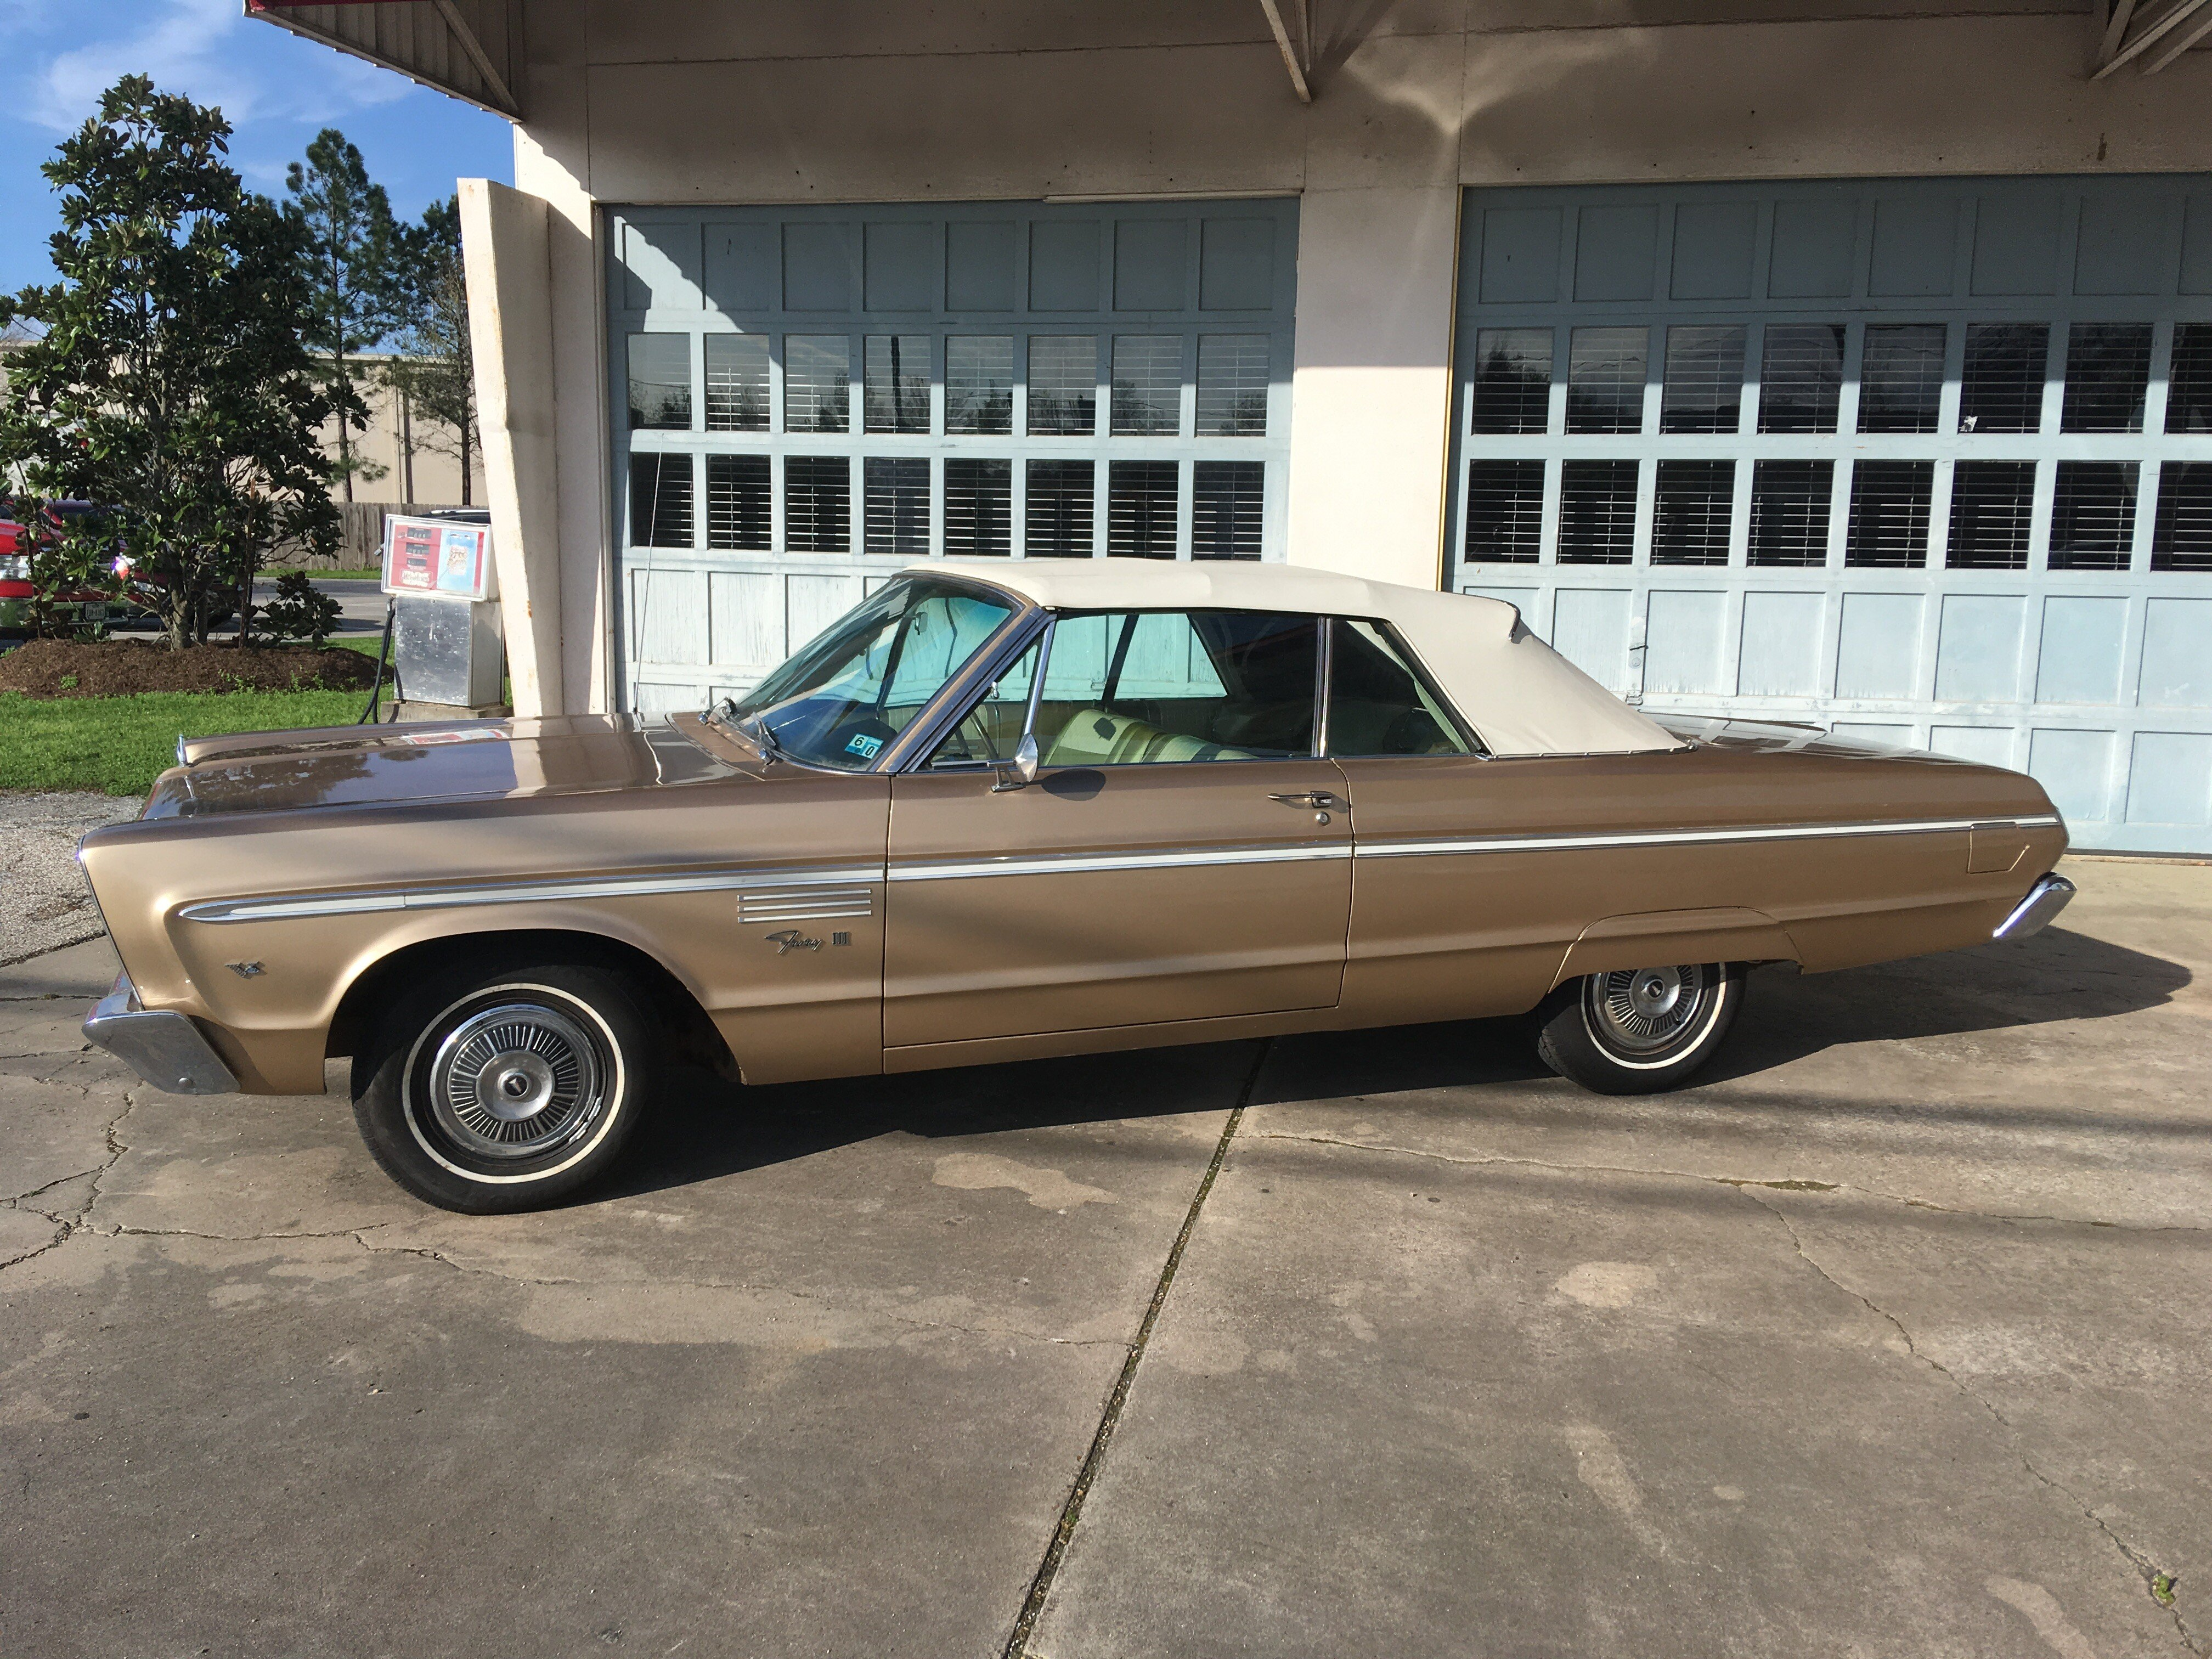 1966 Plymouth Fury Classics For Sale Classics On Autotrader